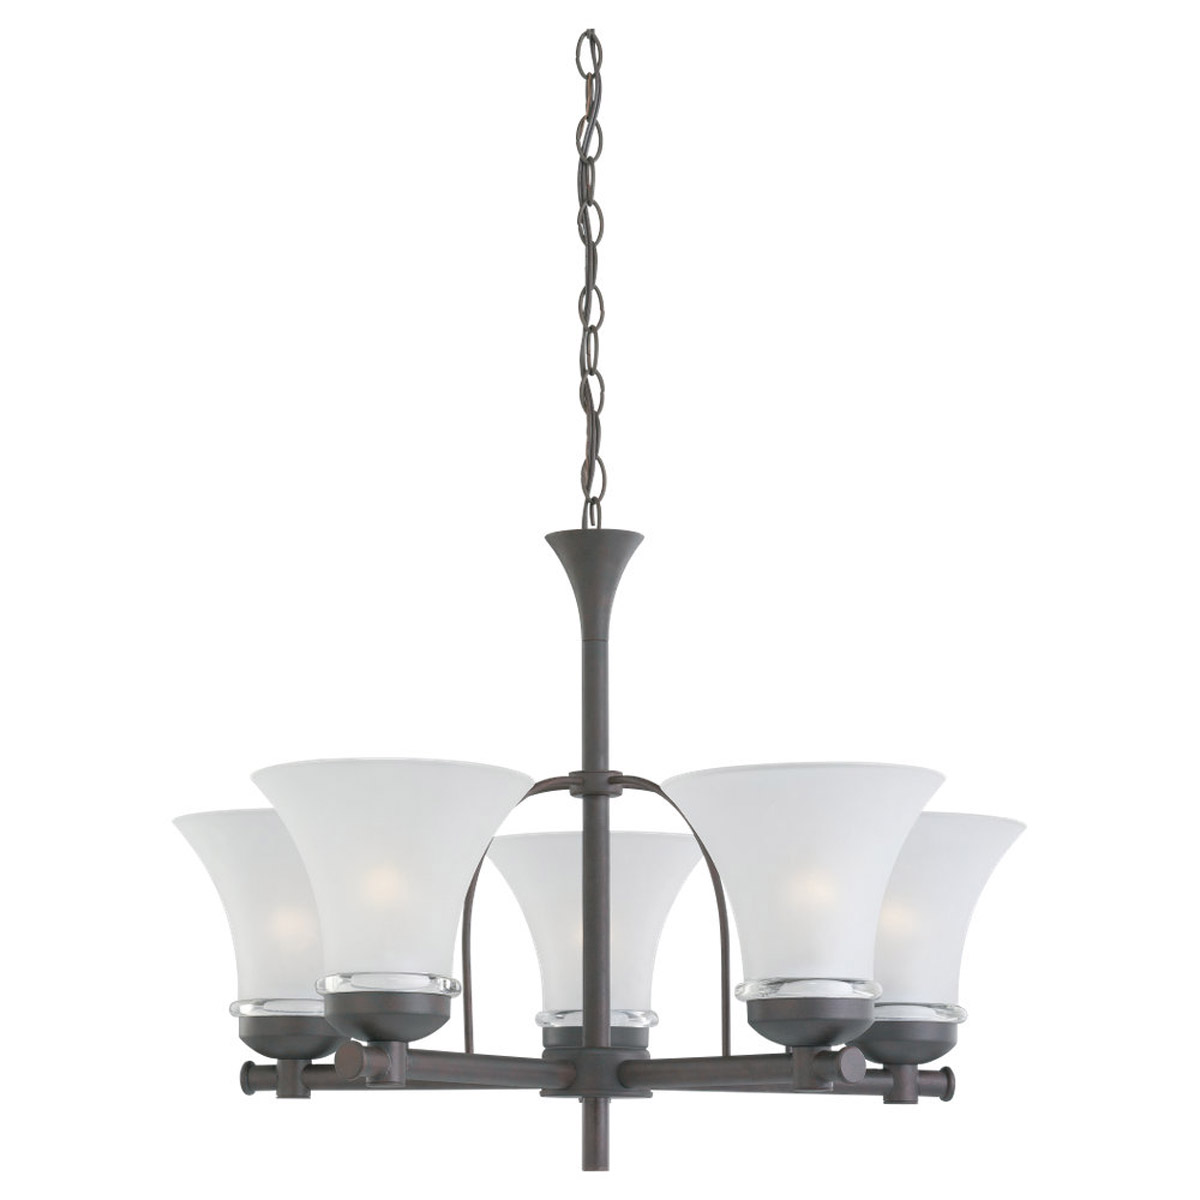 Sea Gull Lighting Newport 5 Light Chandelier in Misted Bronze 31283-814